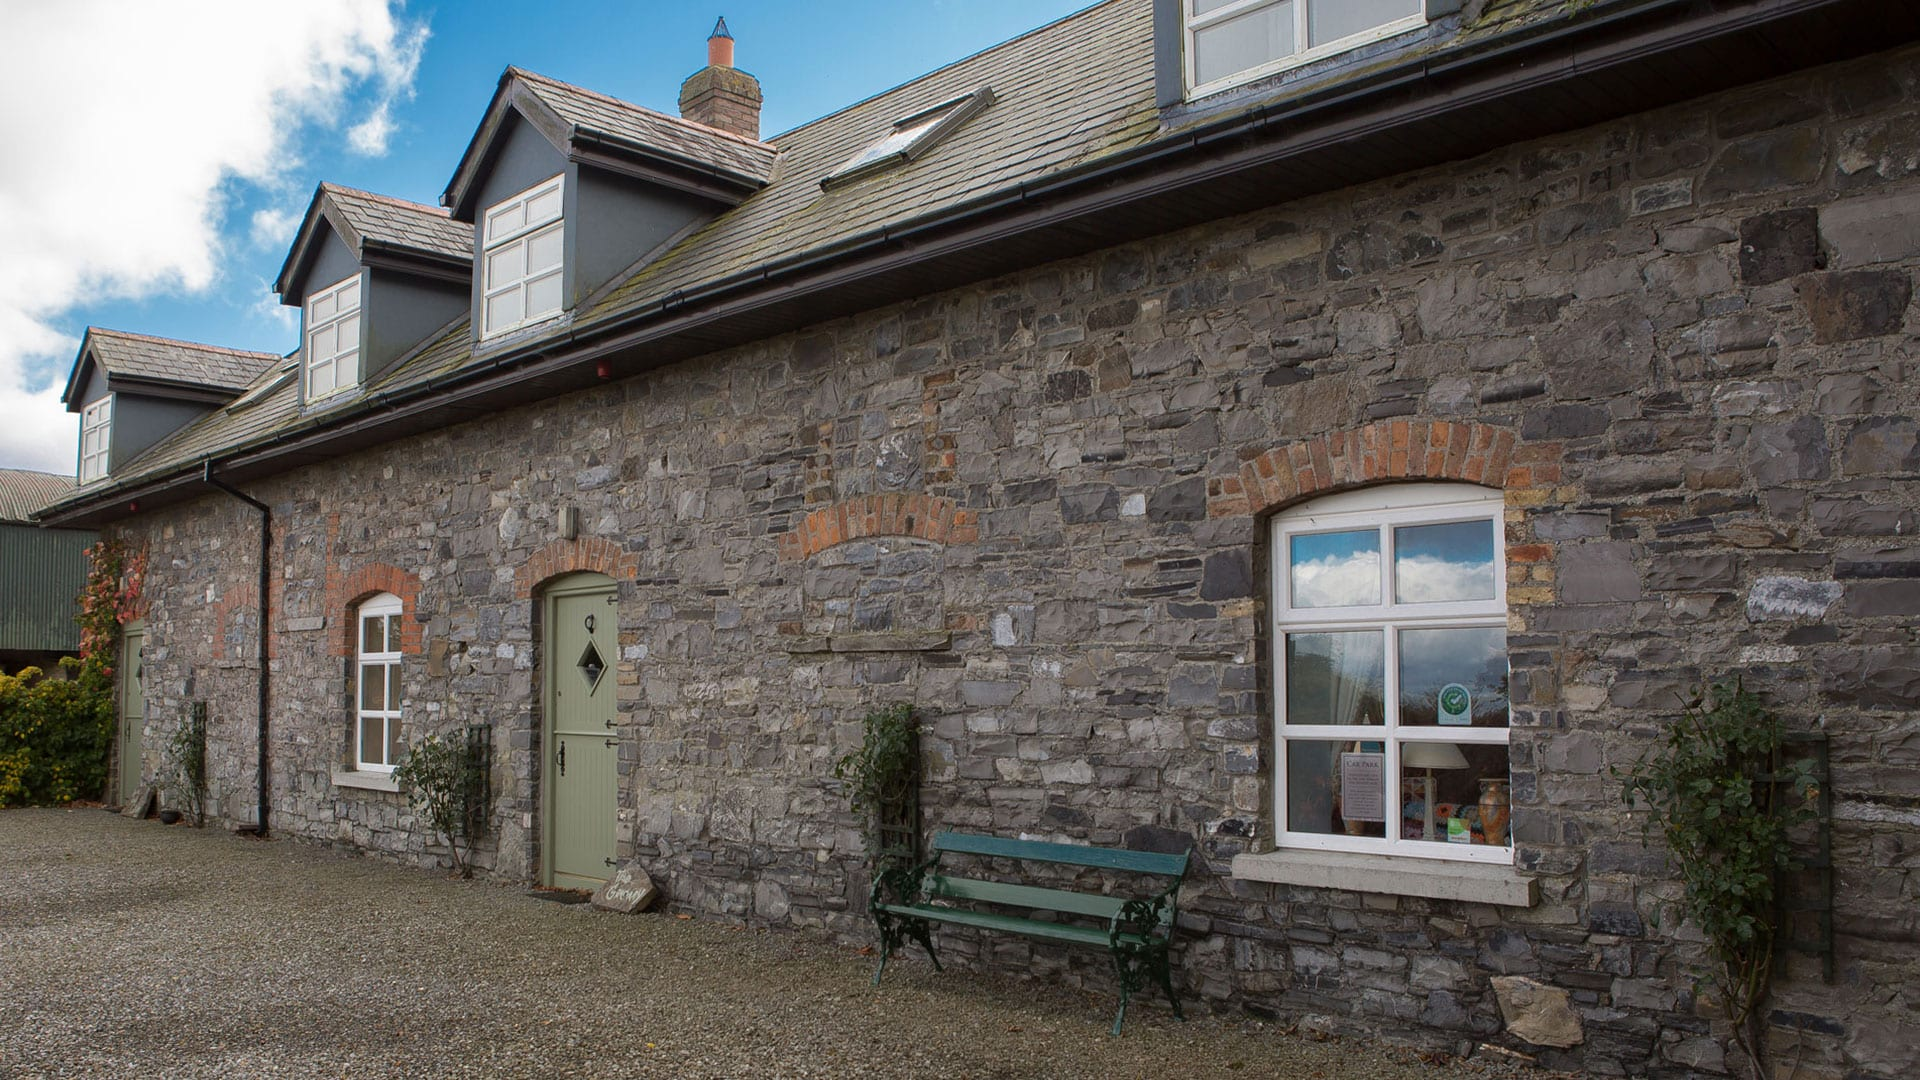 Cottage-House-Door-Facade-Outdoors-Nature-Field-Trees-Farm-Holiday-Homes-Ireland-Meath-Dunshaughlin-Self-Catering